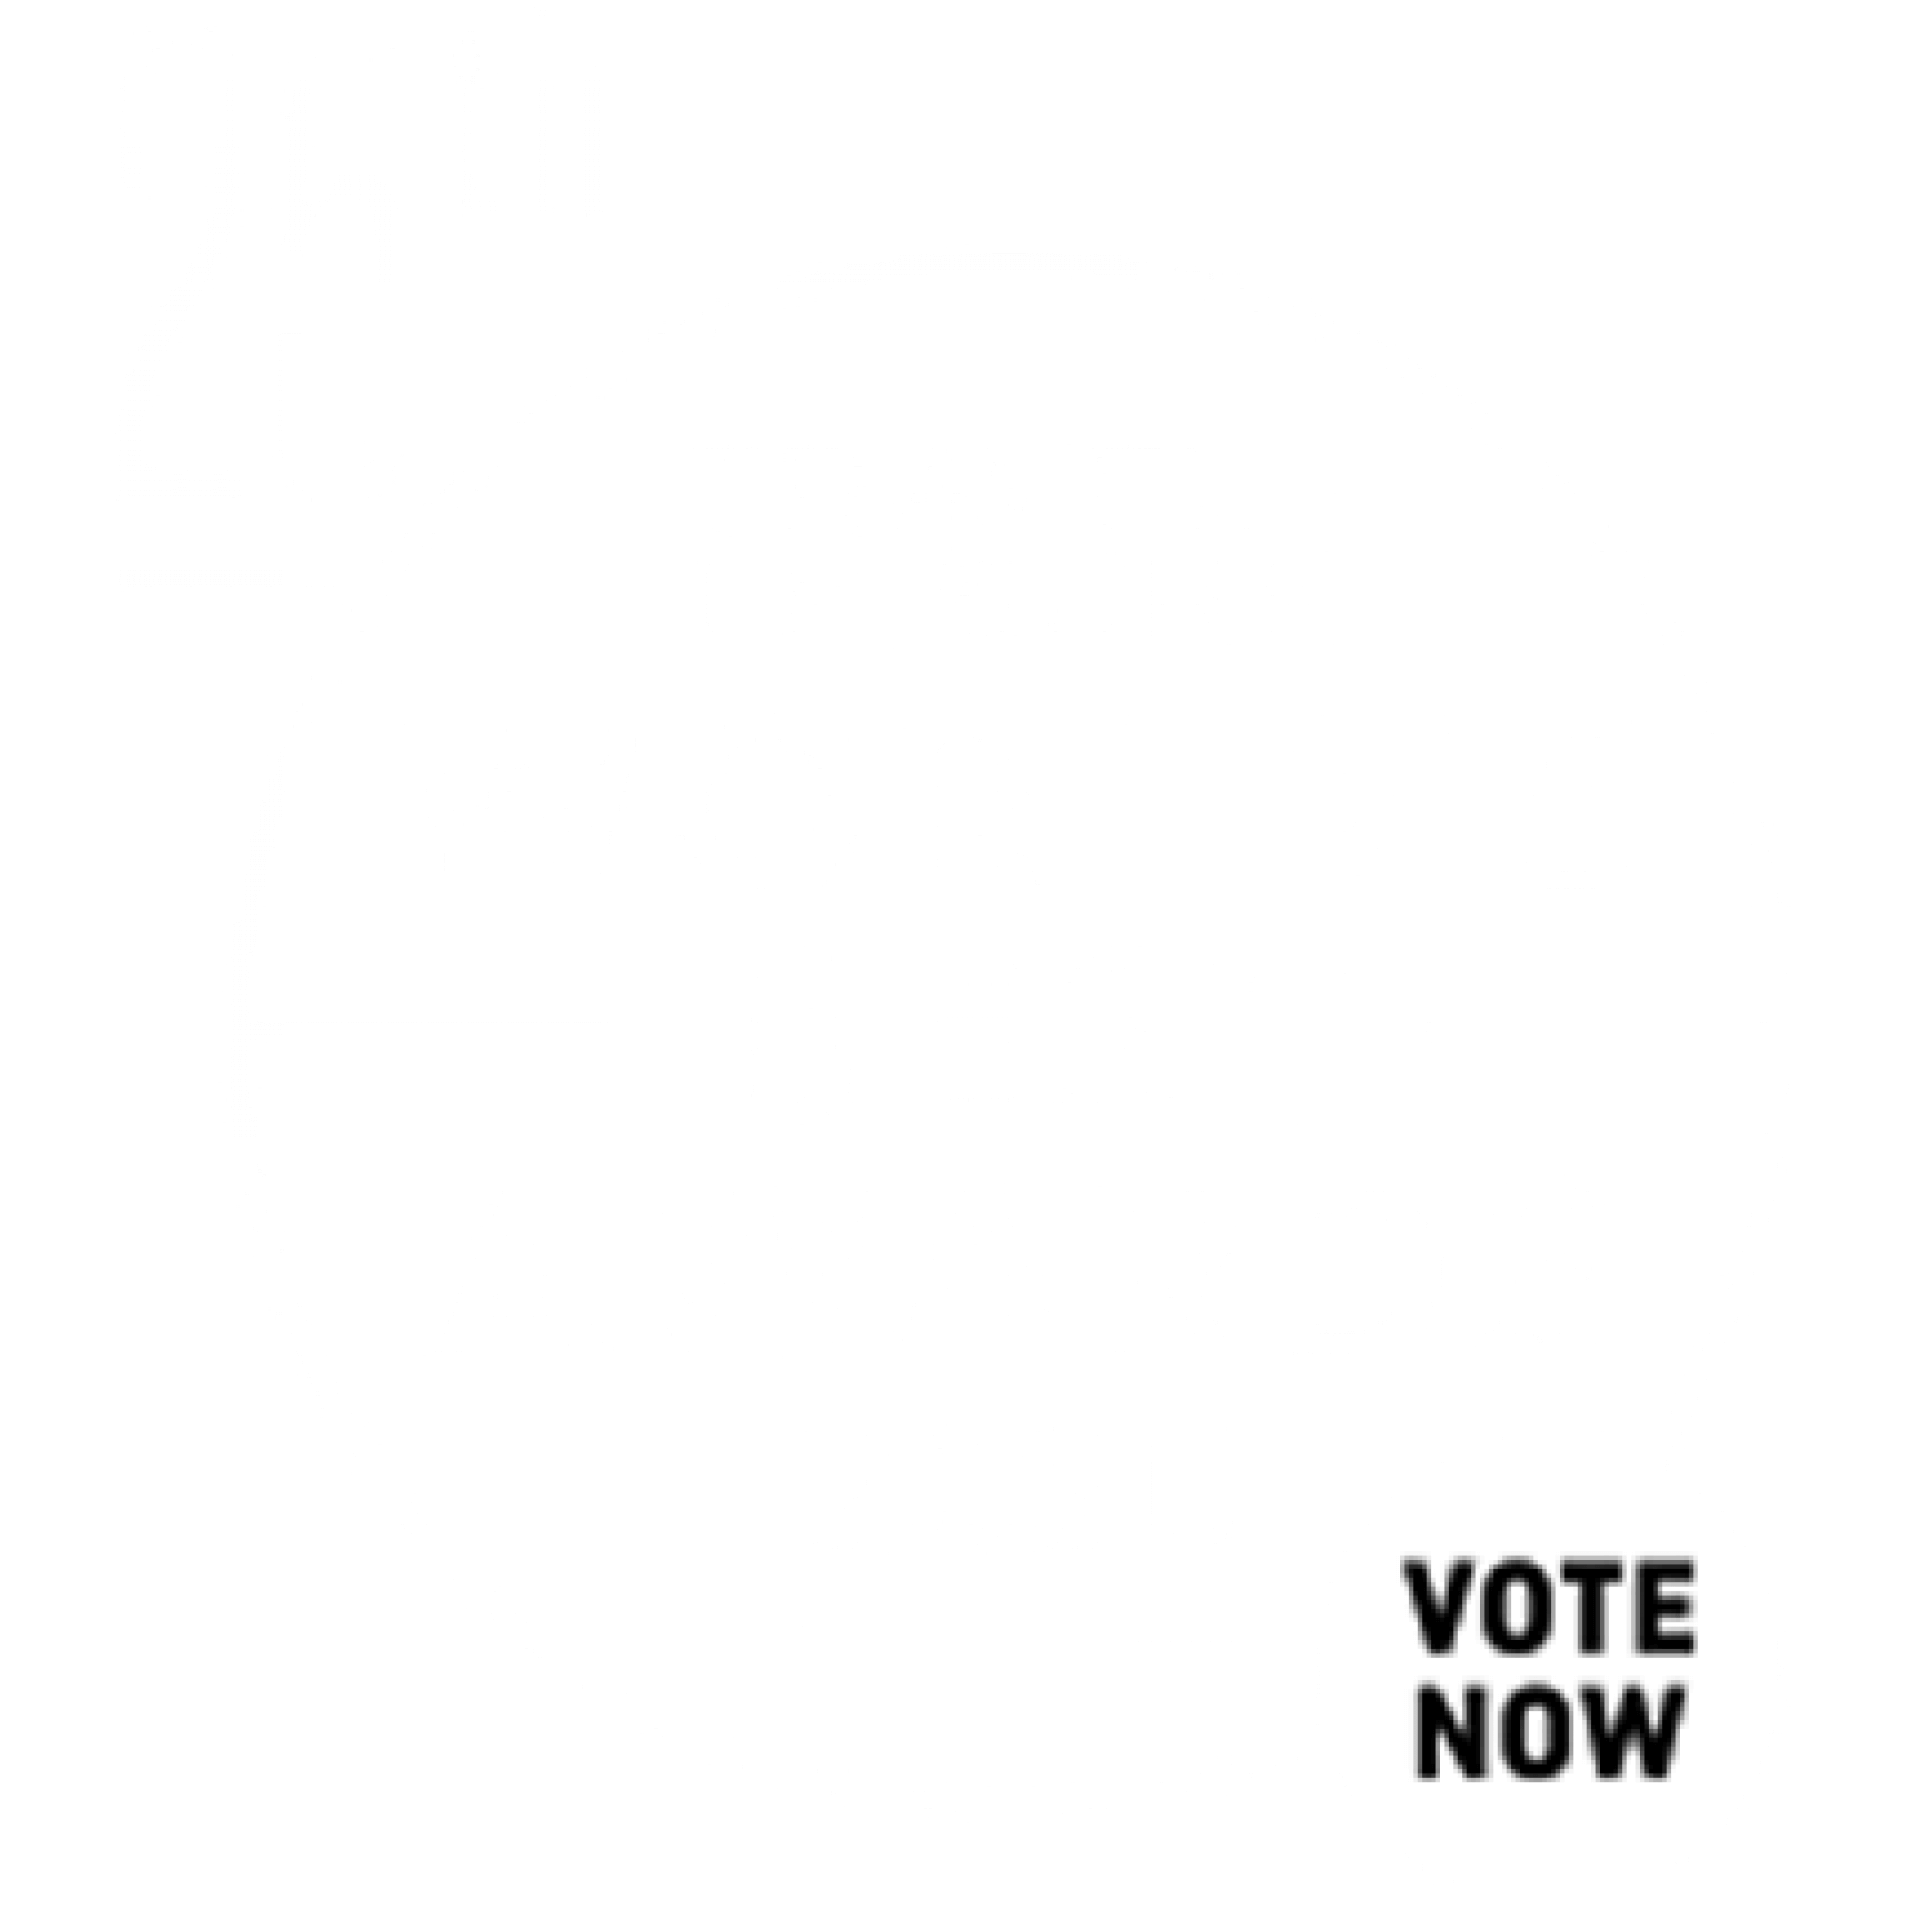 travel and leisure worlds best awards 2020